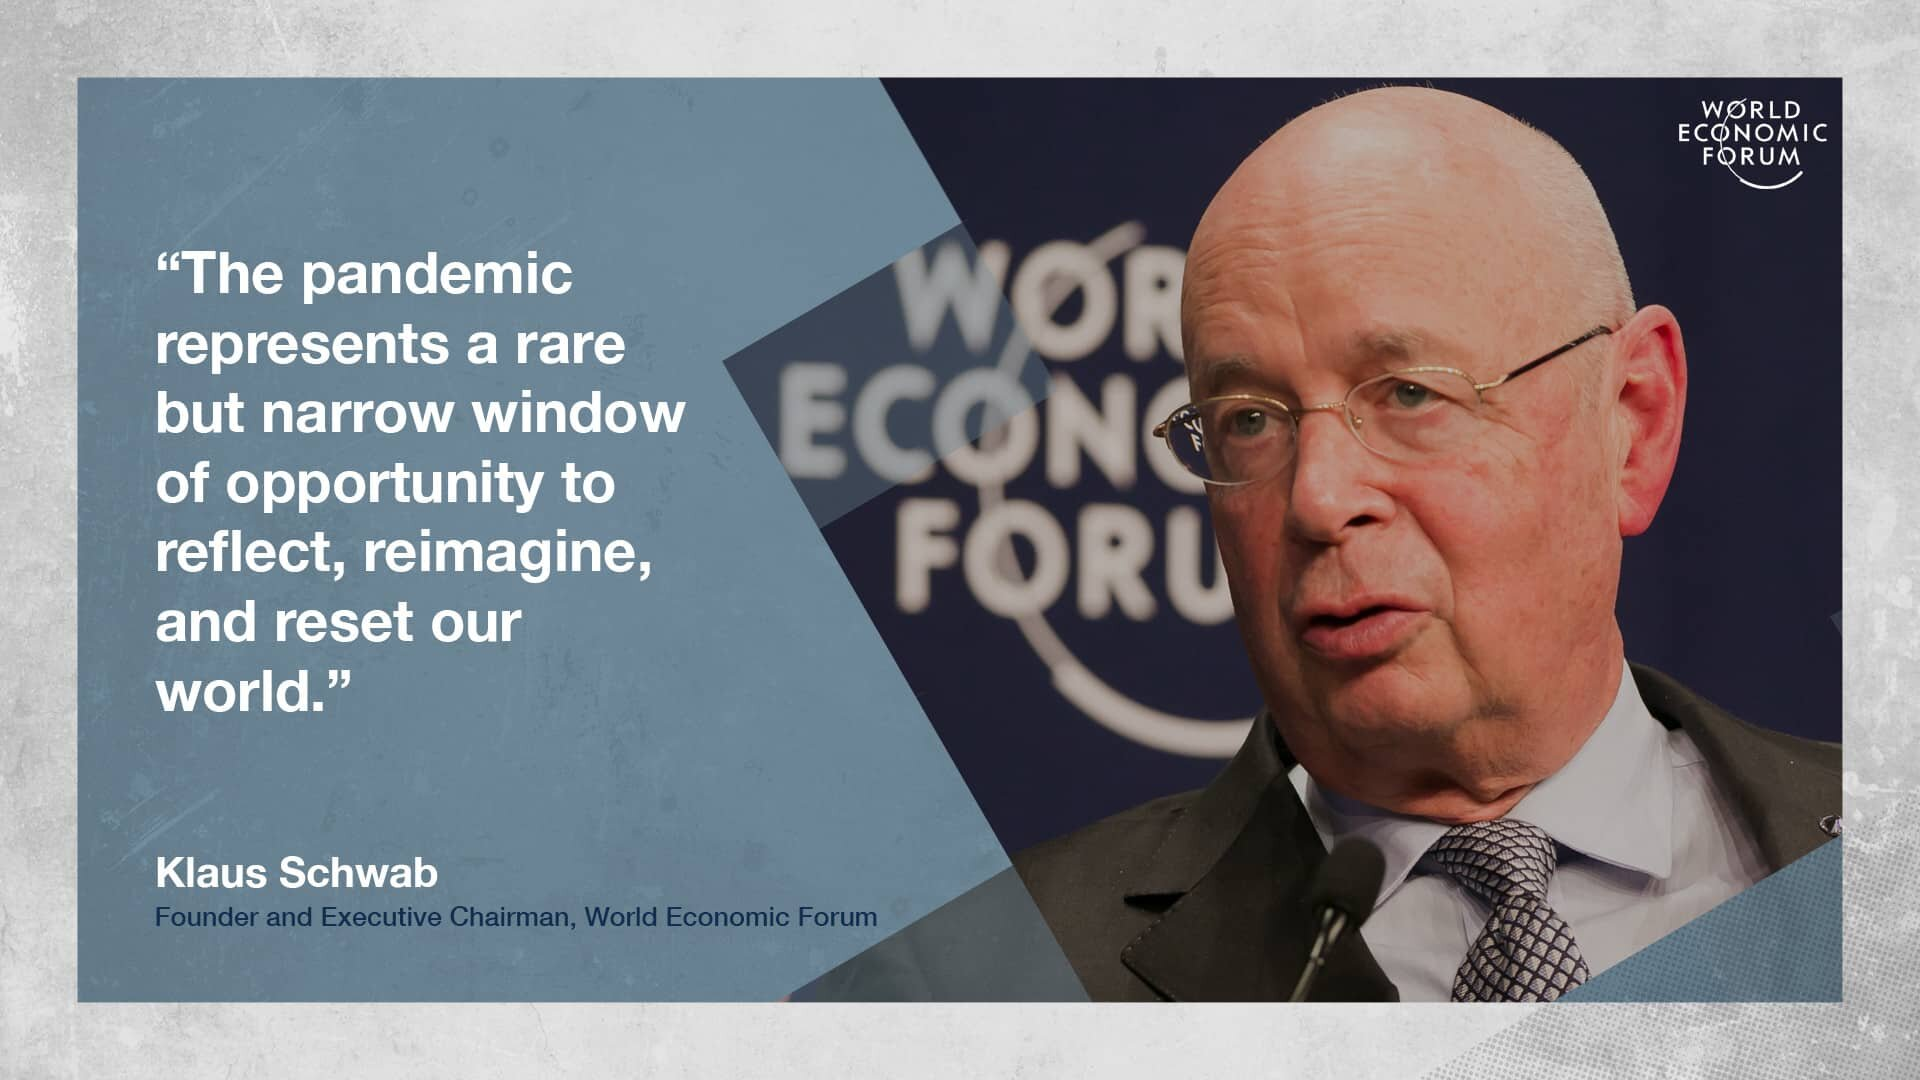 WEF Founder Klaus Schwab Calls For The 'Great Reset'